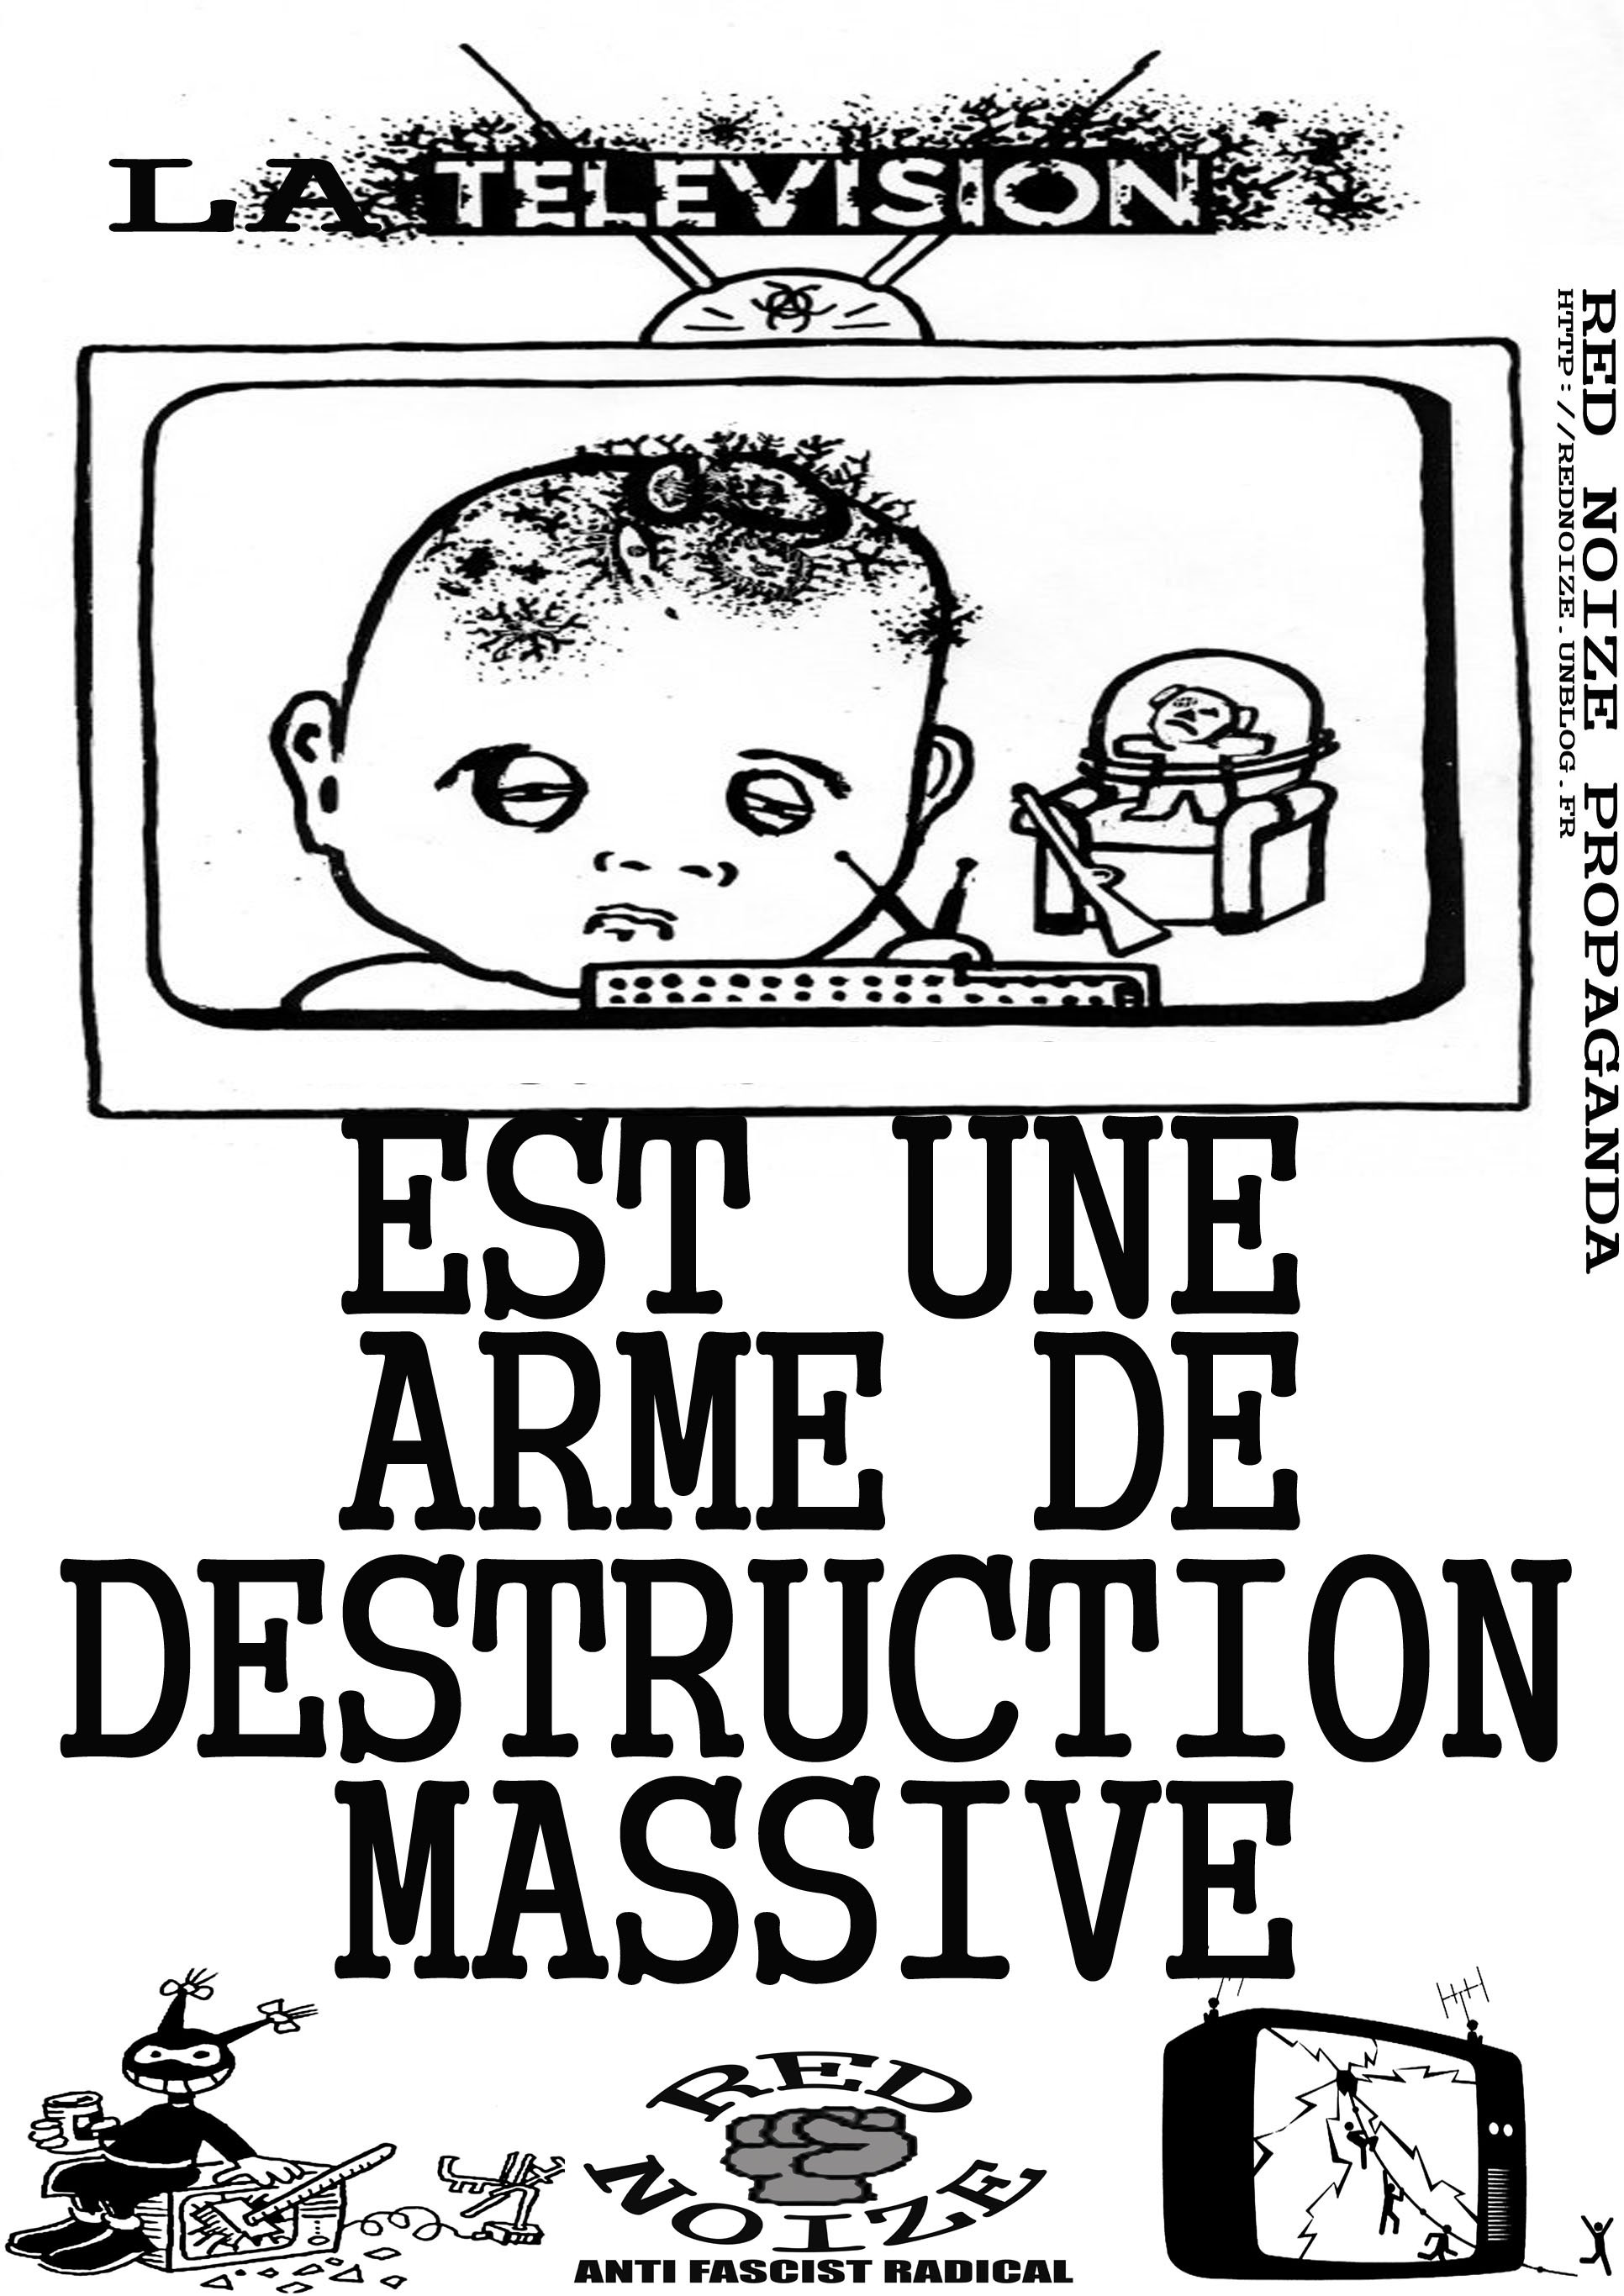 destruction massive 1